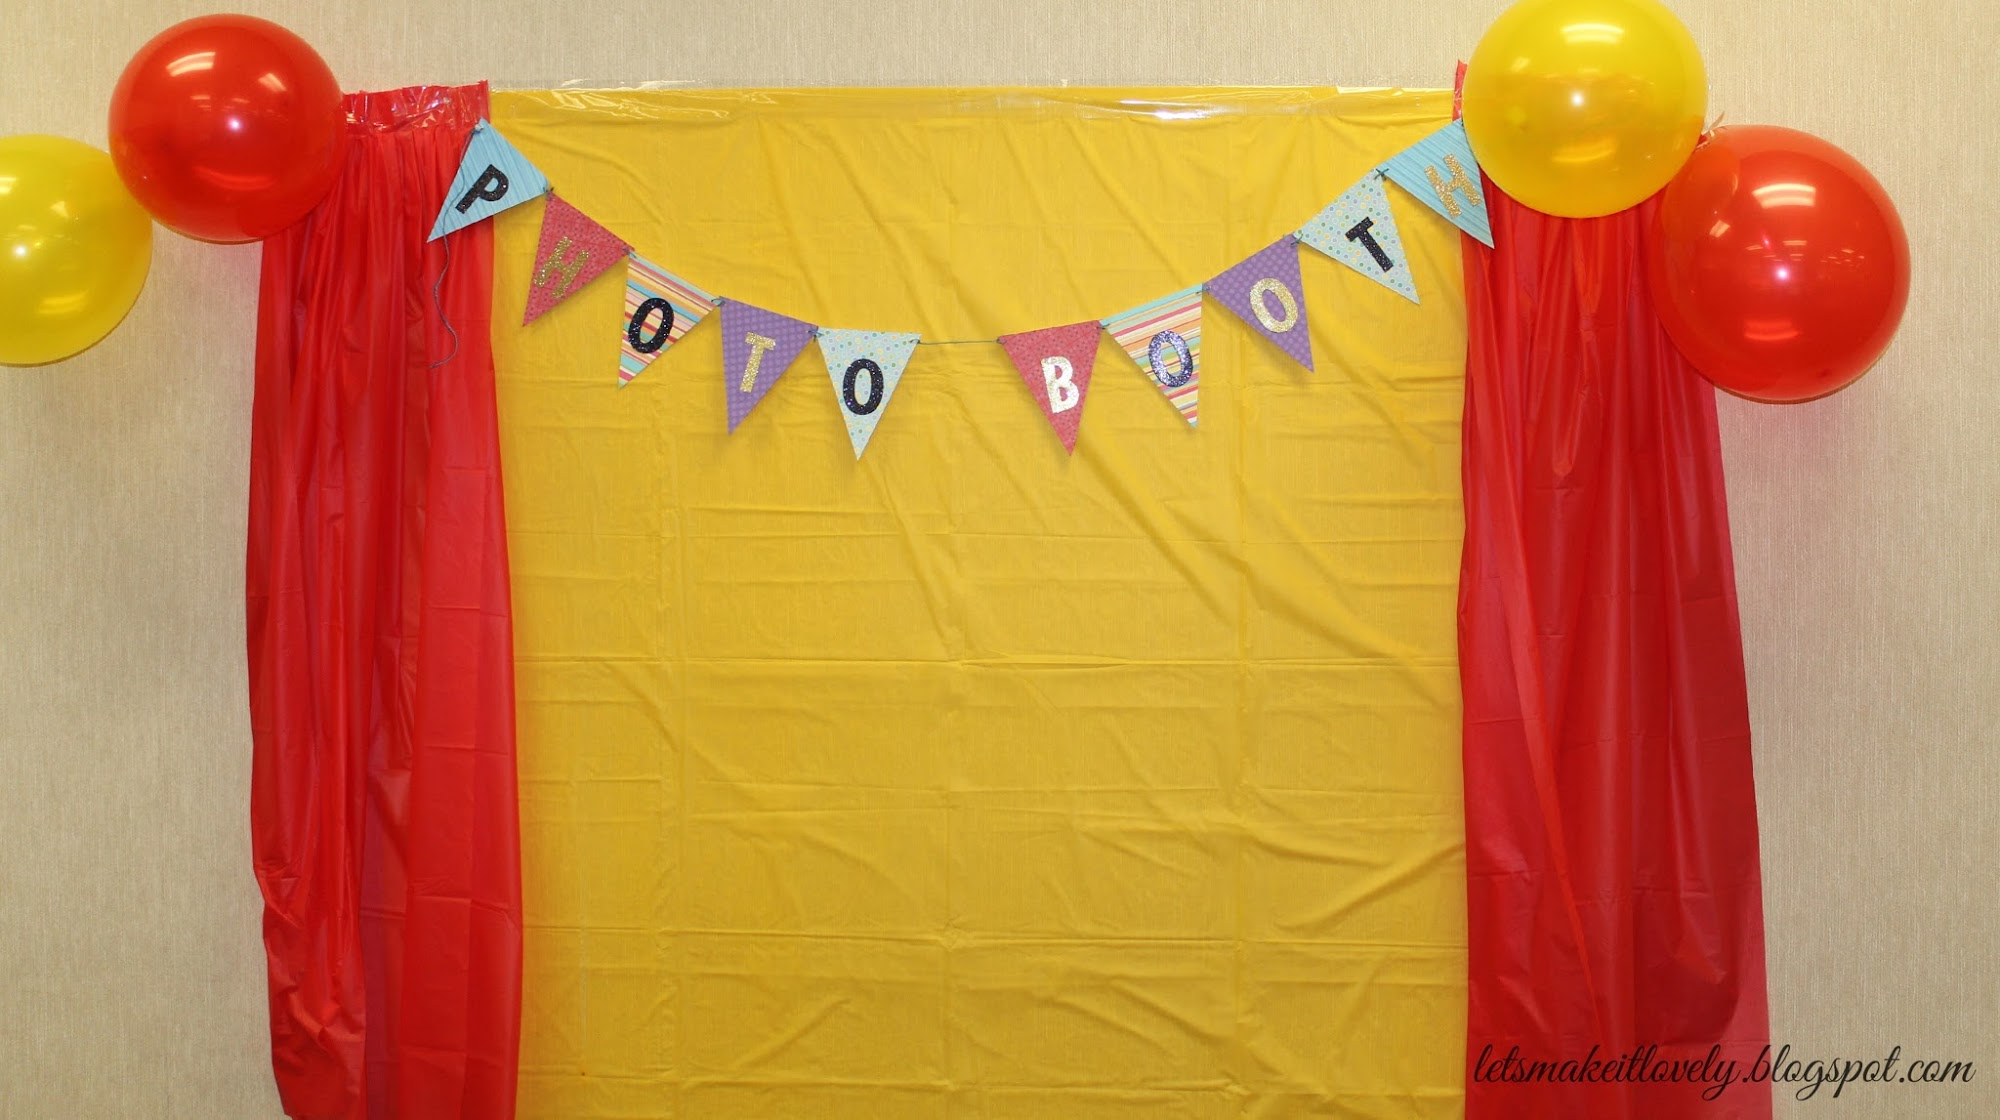 kids birthday party photo booth ; 1YearBoyBirthdayParty11